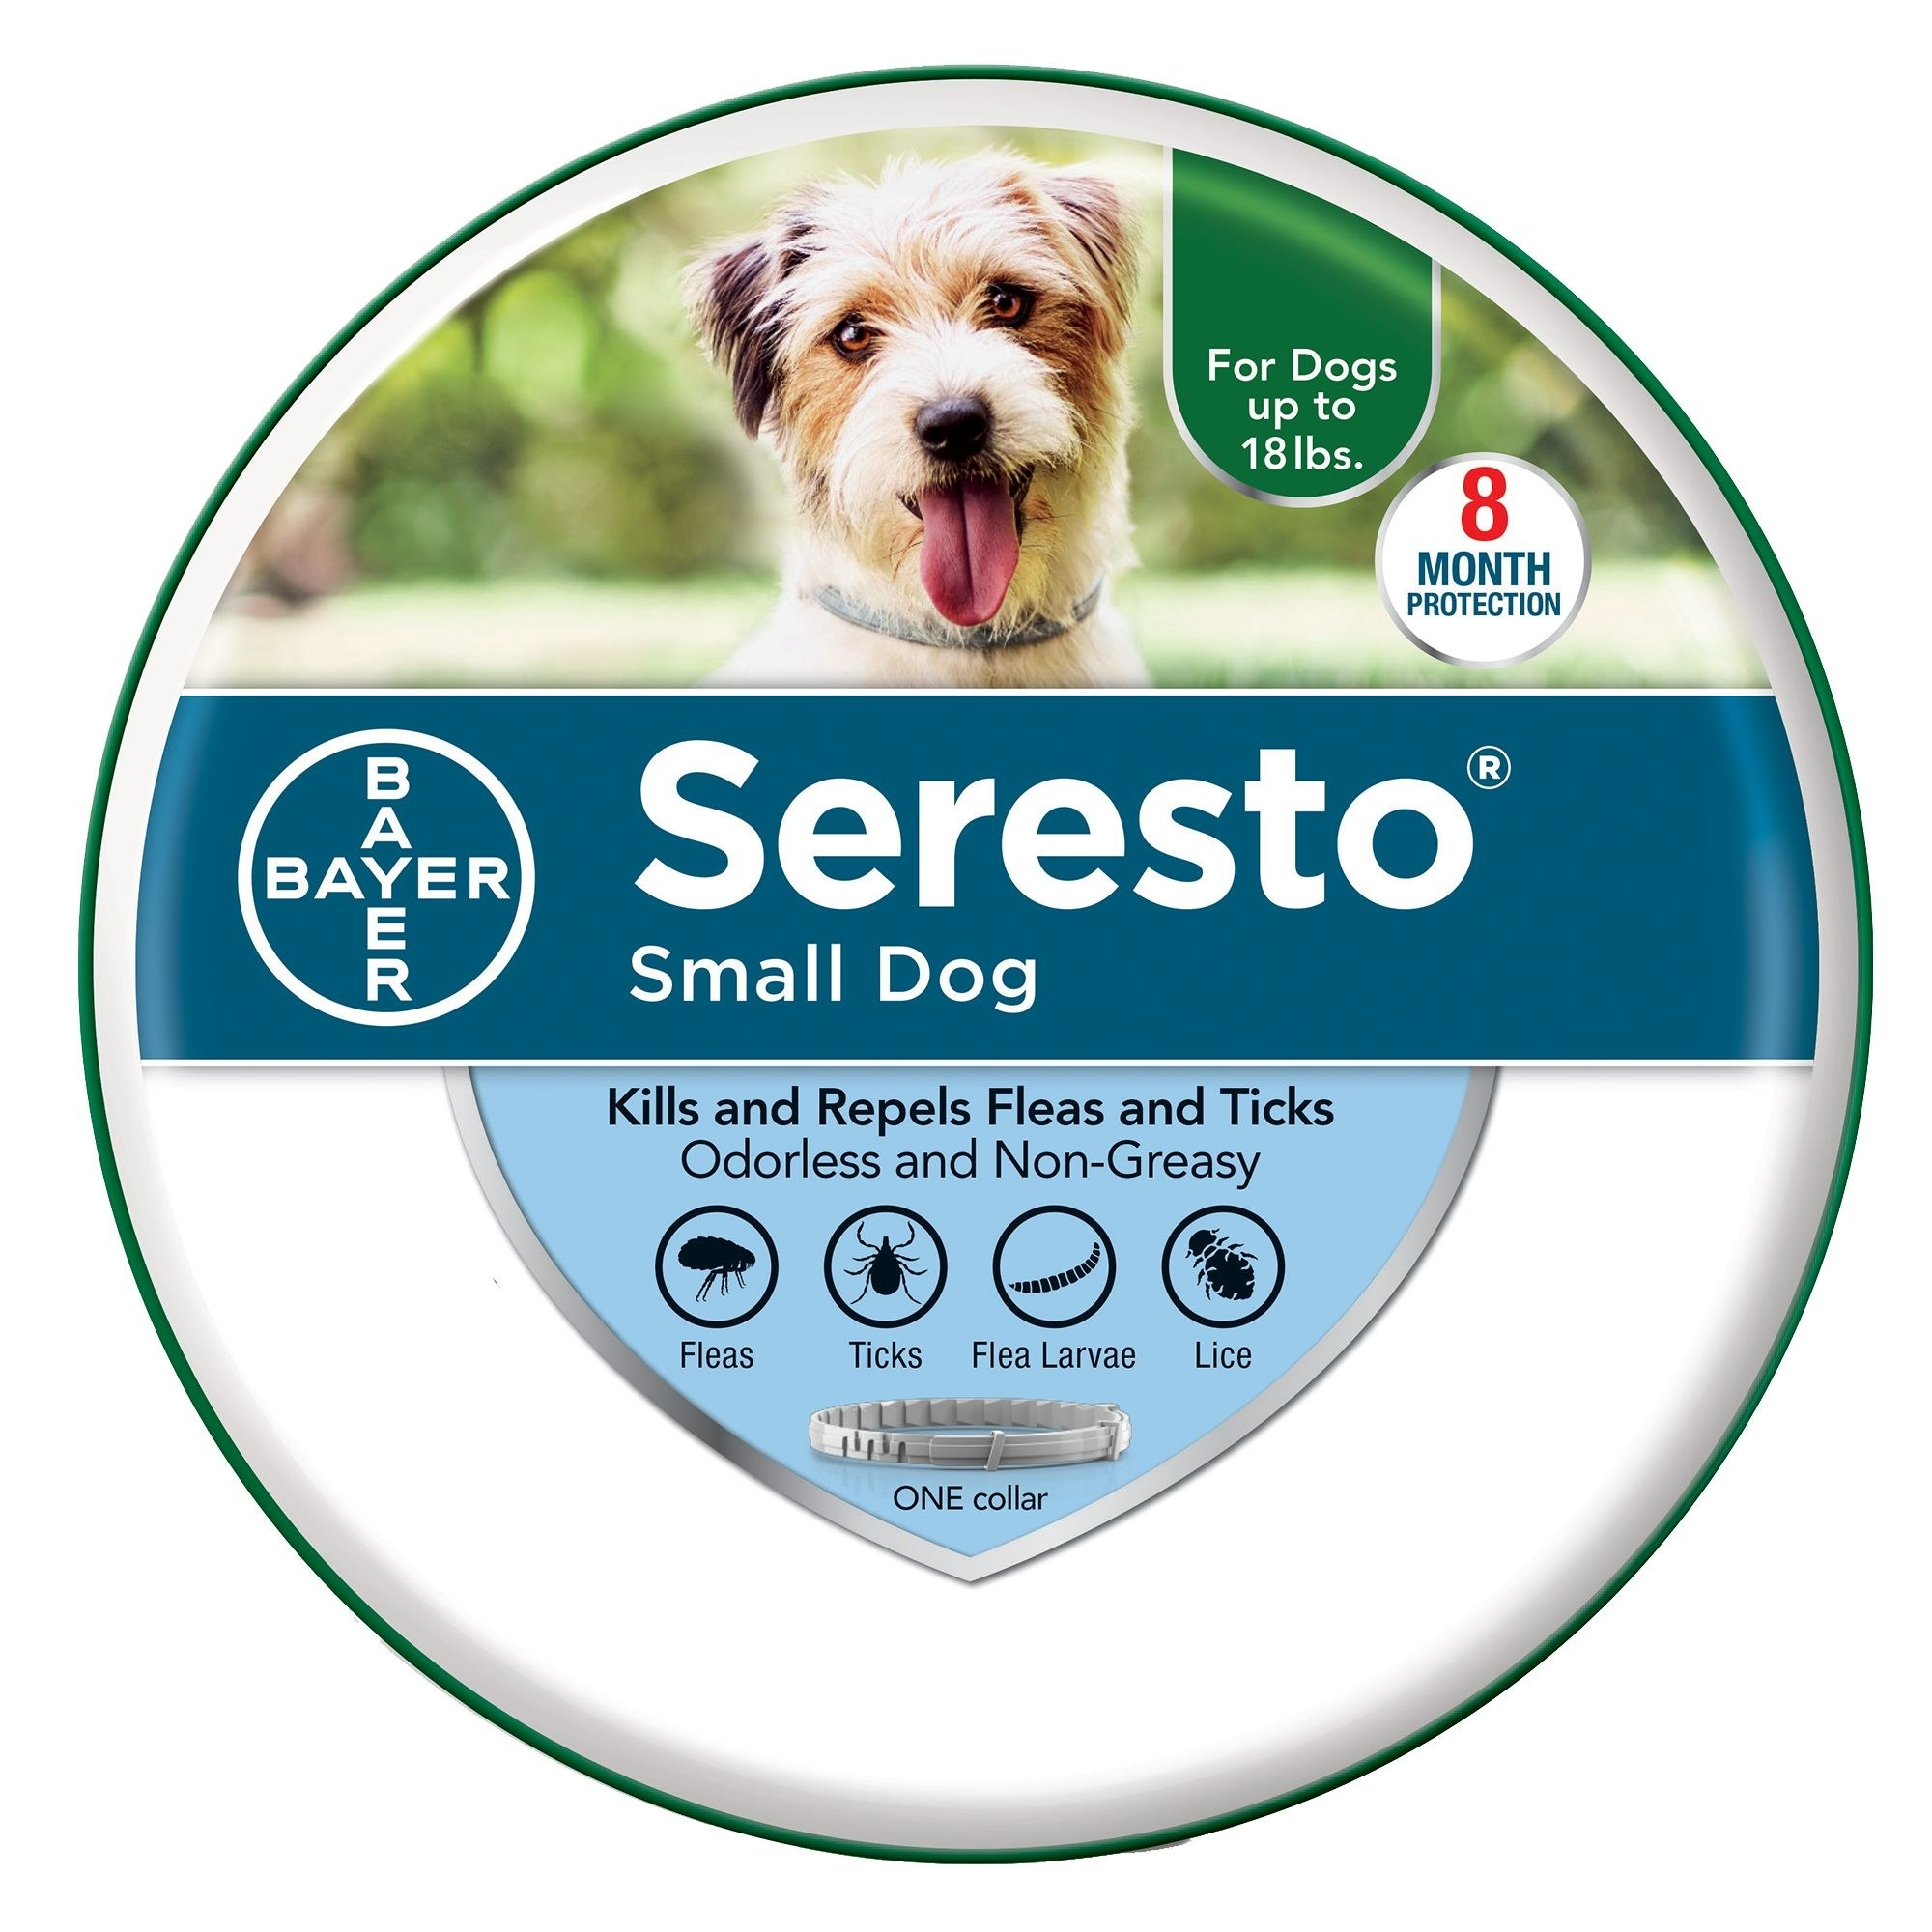 A package containing the Seresto tick and flea collar.